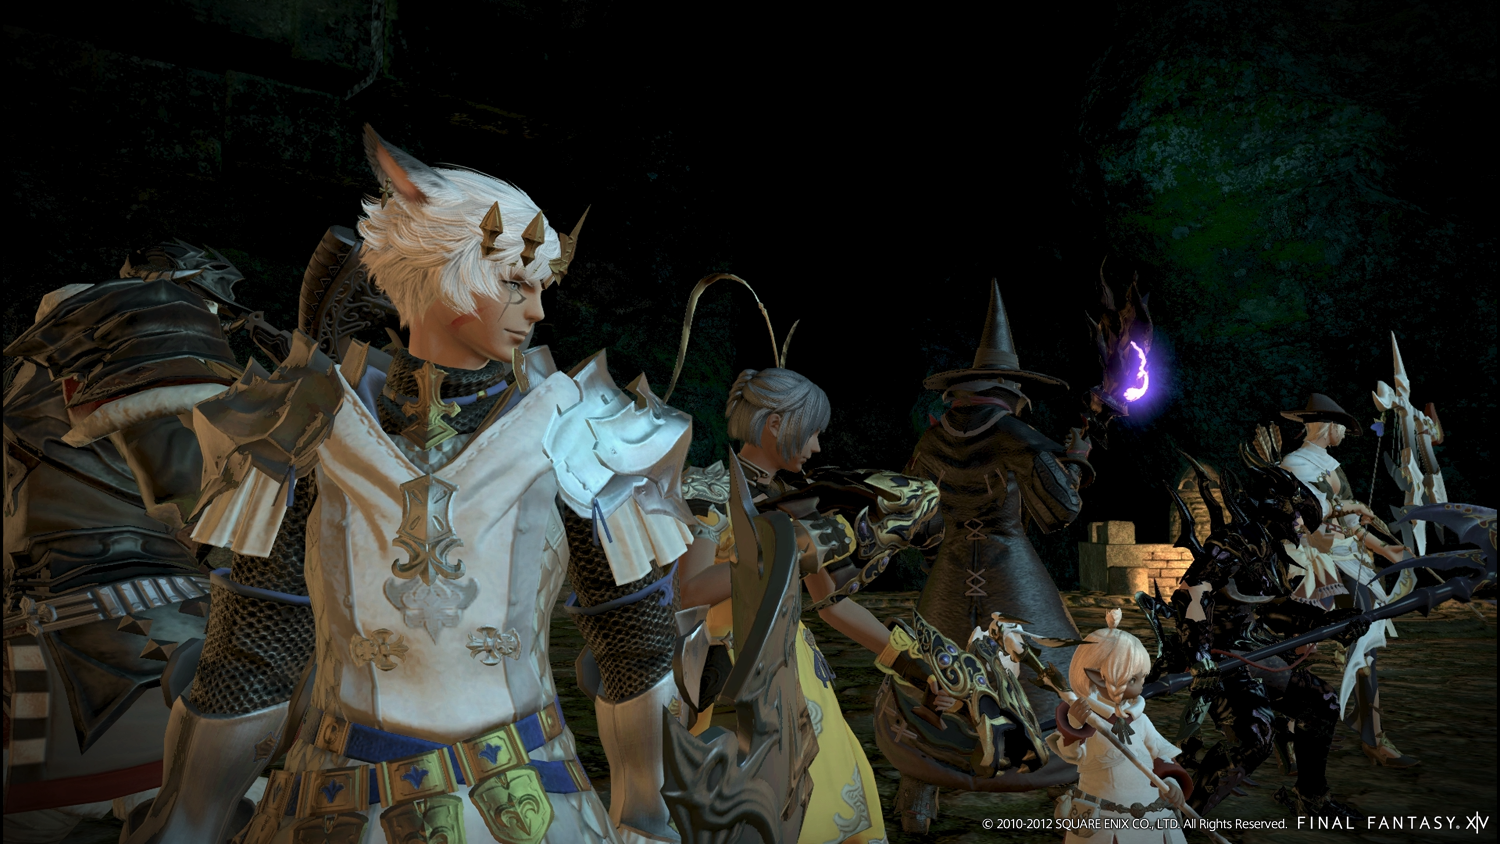 FFXIV: The Return To Ivalice 24 Man Raid Will Be Implemented